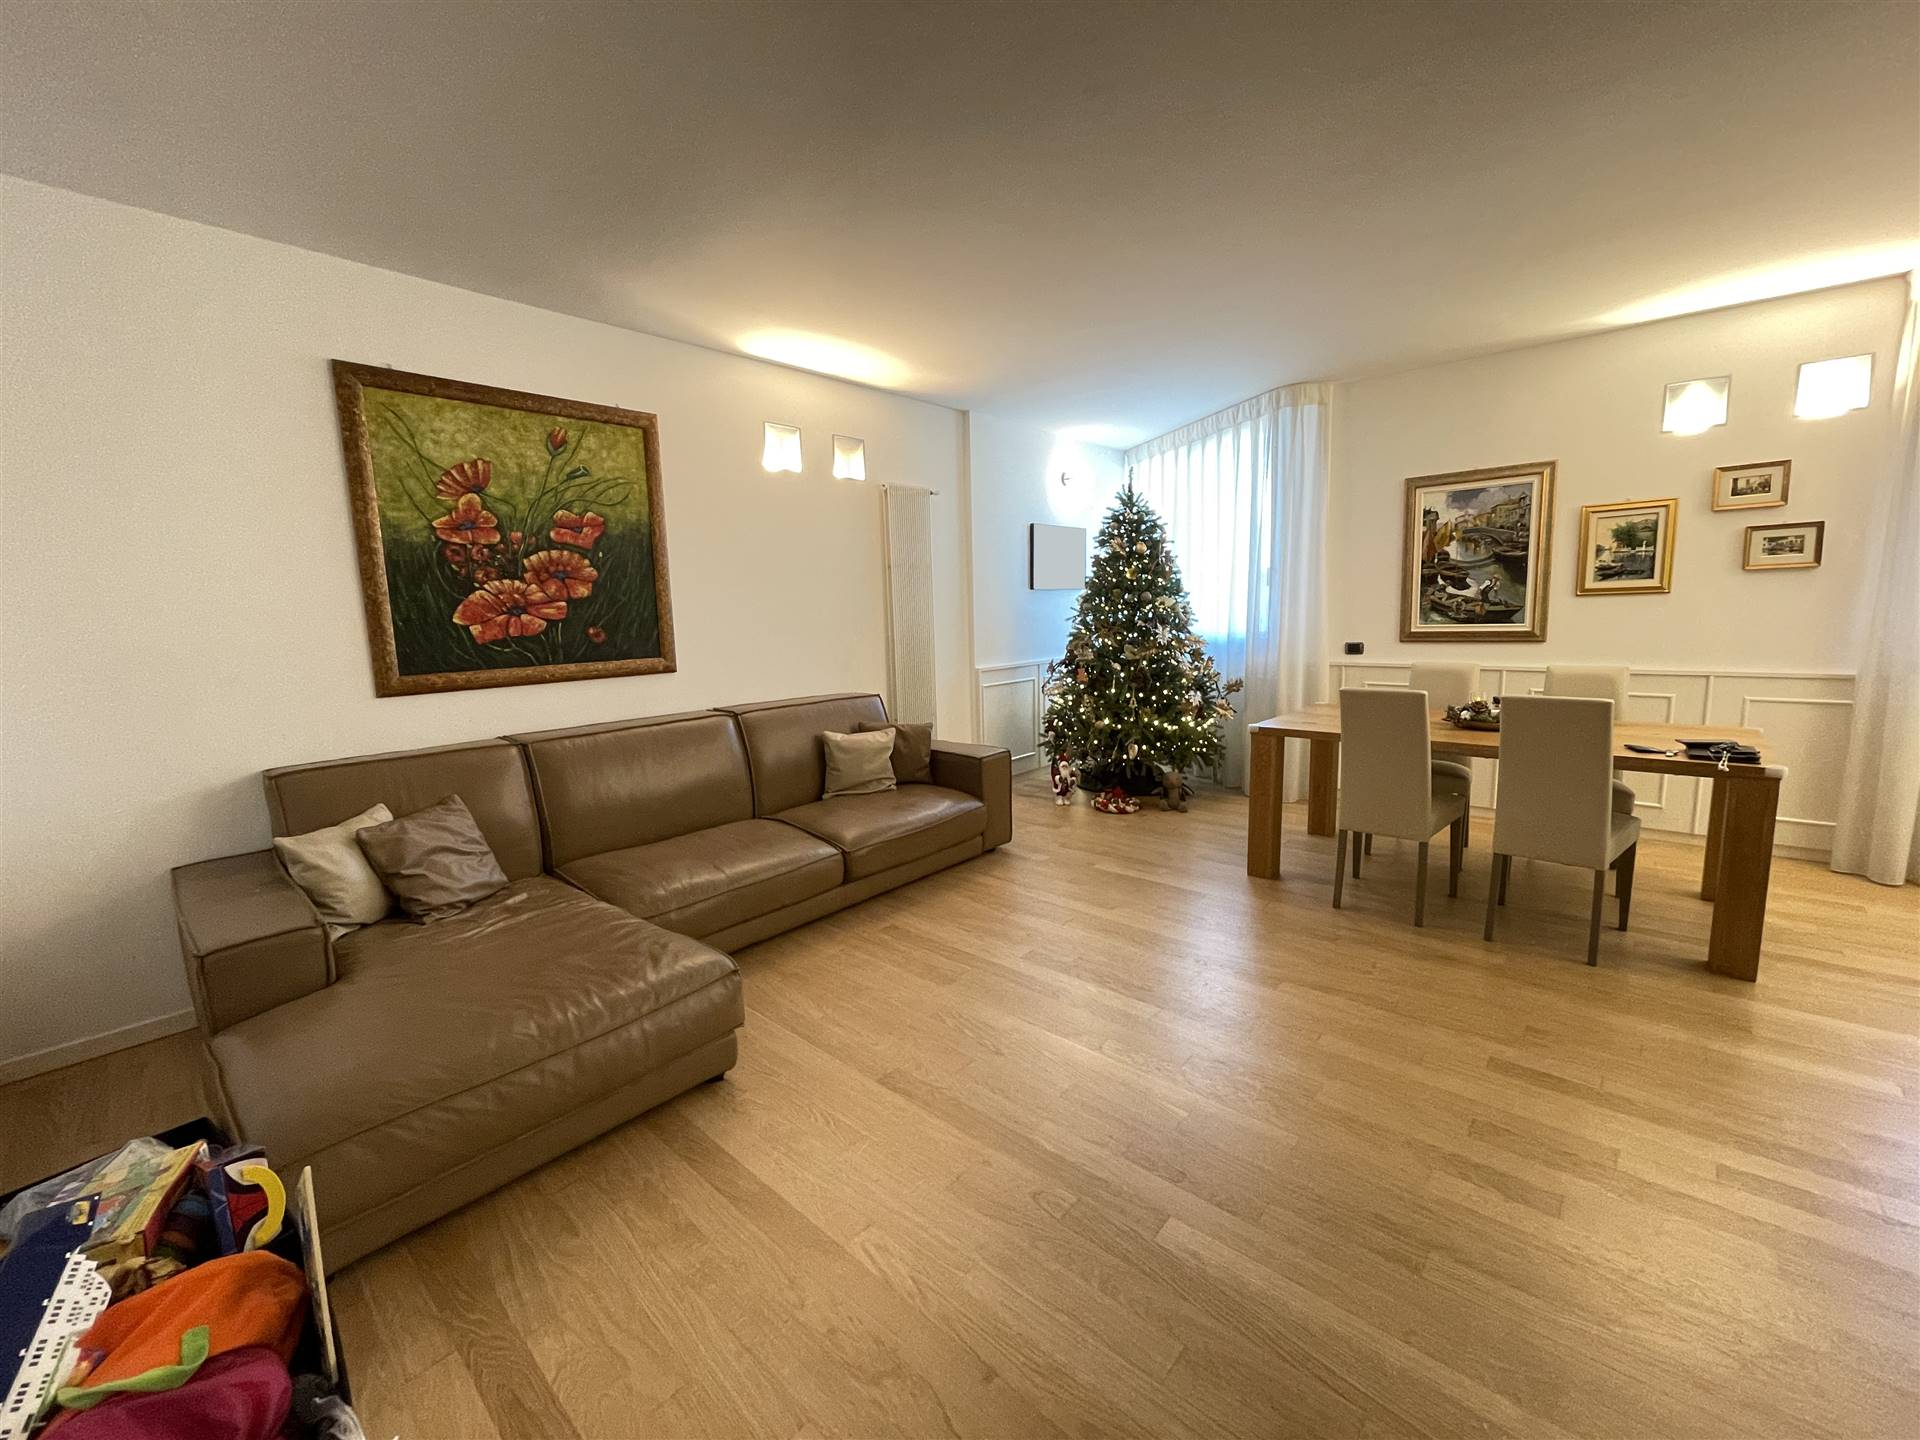 SOTTOMARINA, CHIOGGIA, Apartment for sale of 100 Sq. mt., Excellent Condition, Heating Individual heating system, Energetic class: B, placed at 4° on